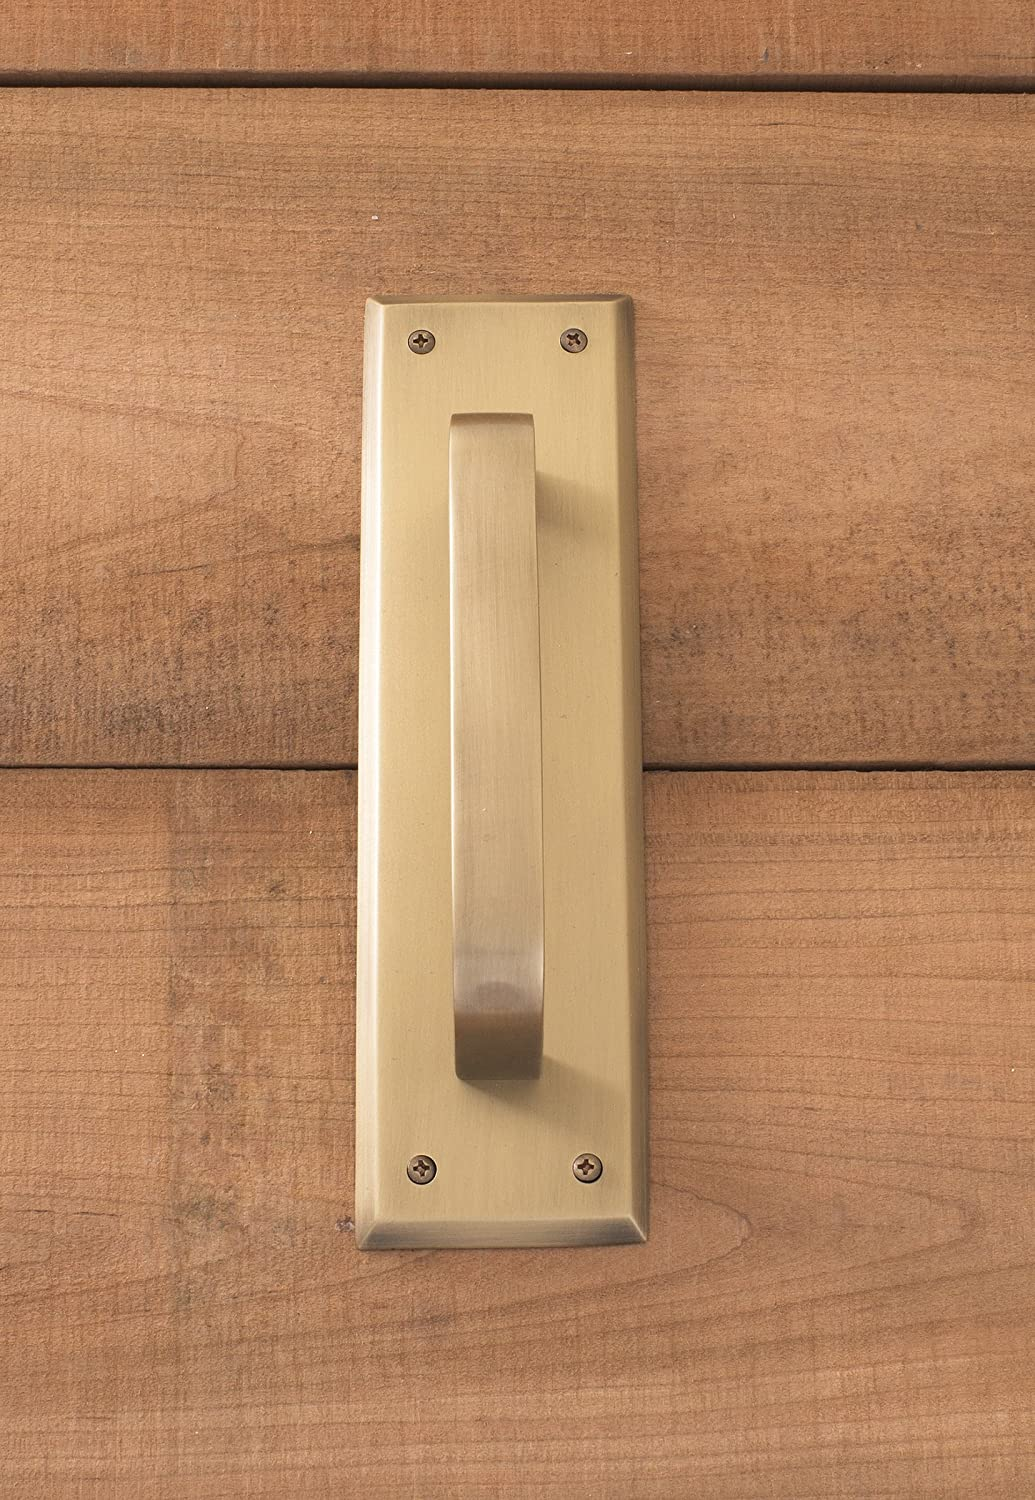 BRASS Accents A07-P5401-619 Quaker Pull Plate Satin Nickel 2-3//4 x 10